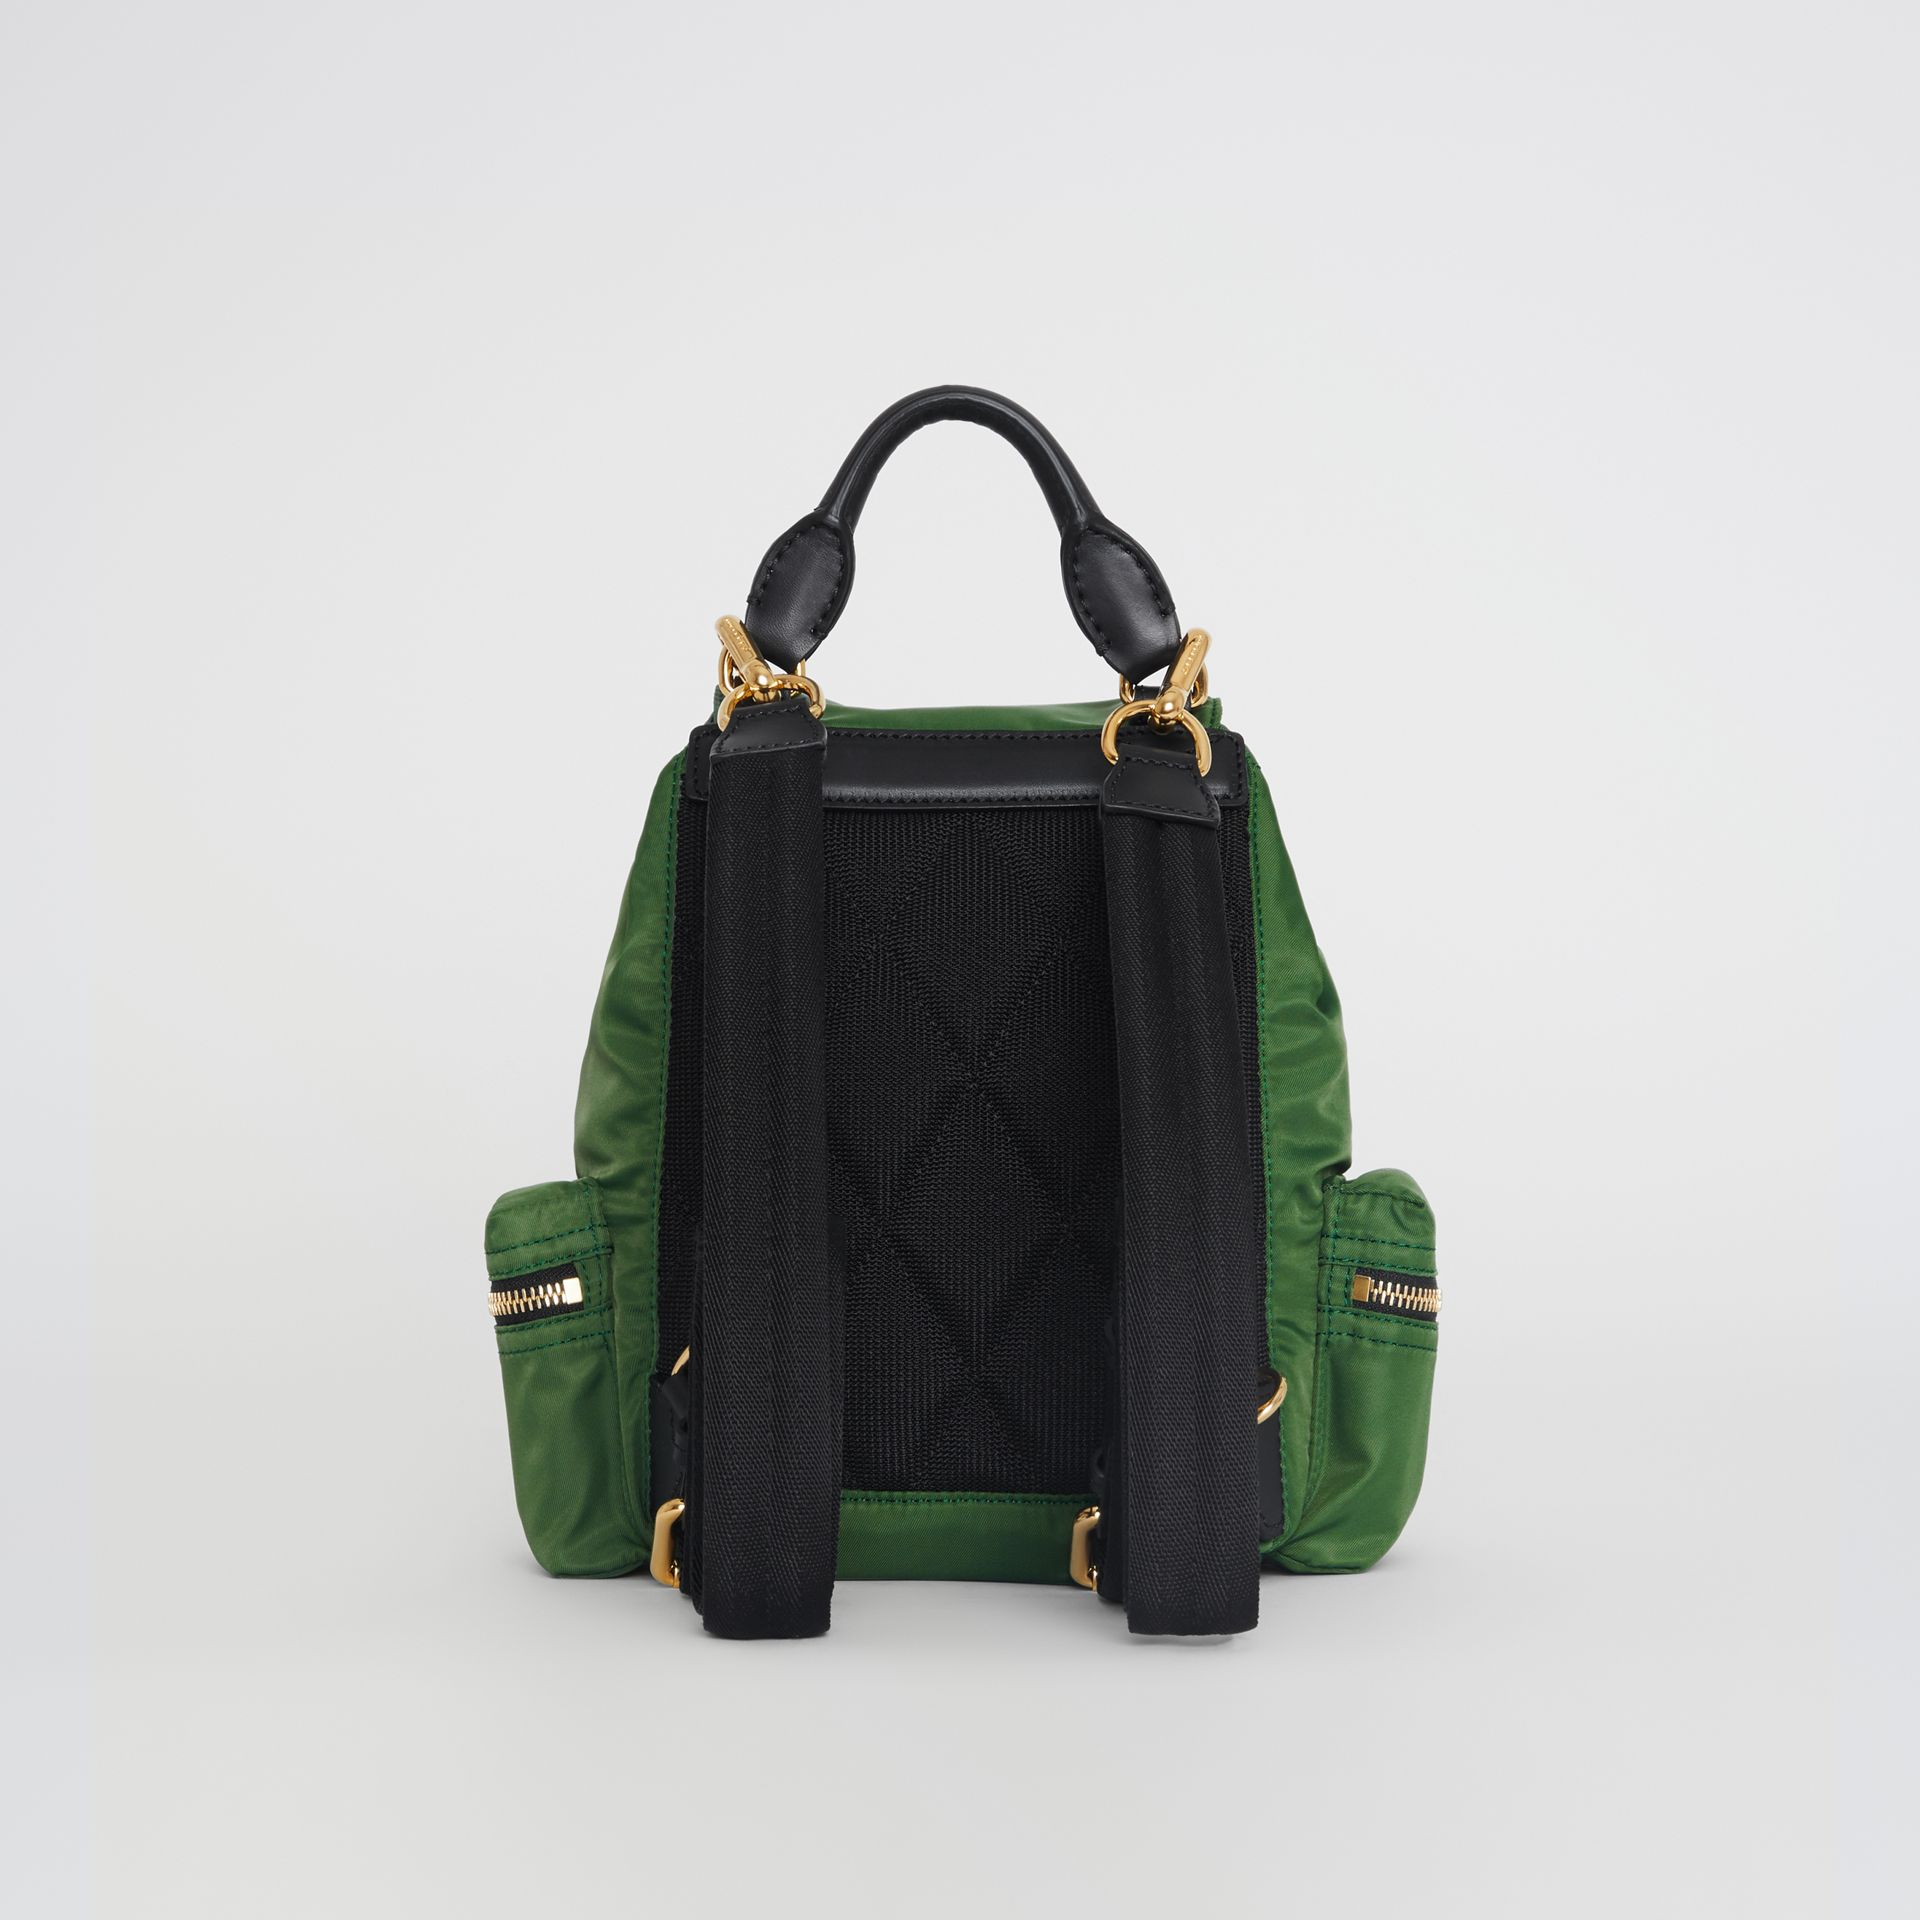 The Small Crossbody Rucksack in Nylon in Racing Green - Women | Burberry Hong Kong - gallery image 8